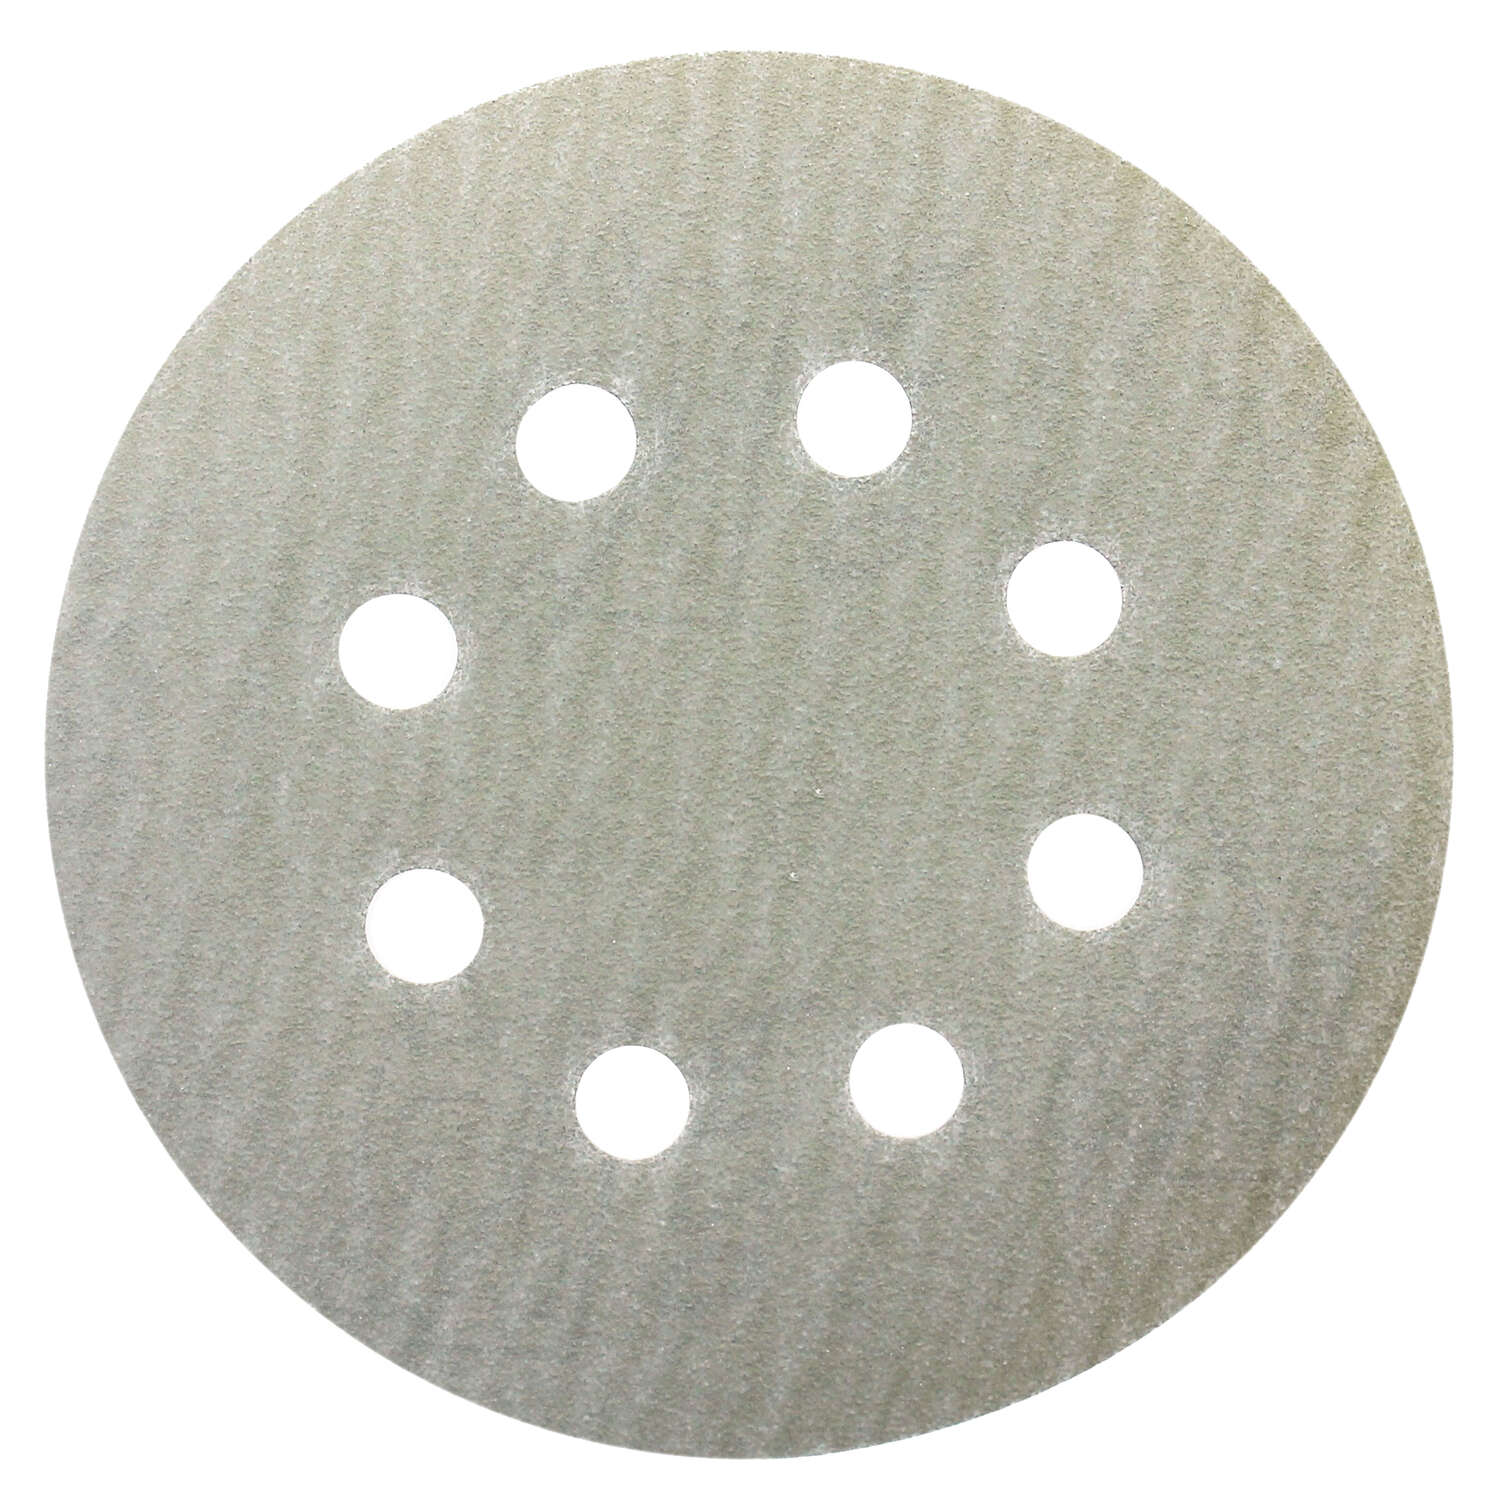 Shopsmith  5 in. Aluminum Oxide  Hook and Loop  Sanding Disc  Medium  15 pk 120 Grit